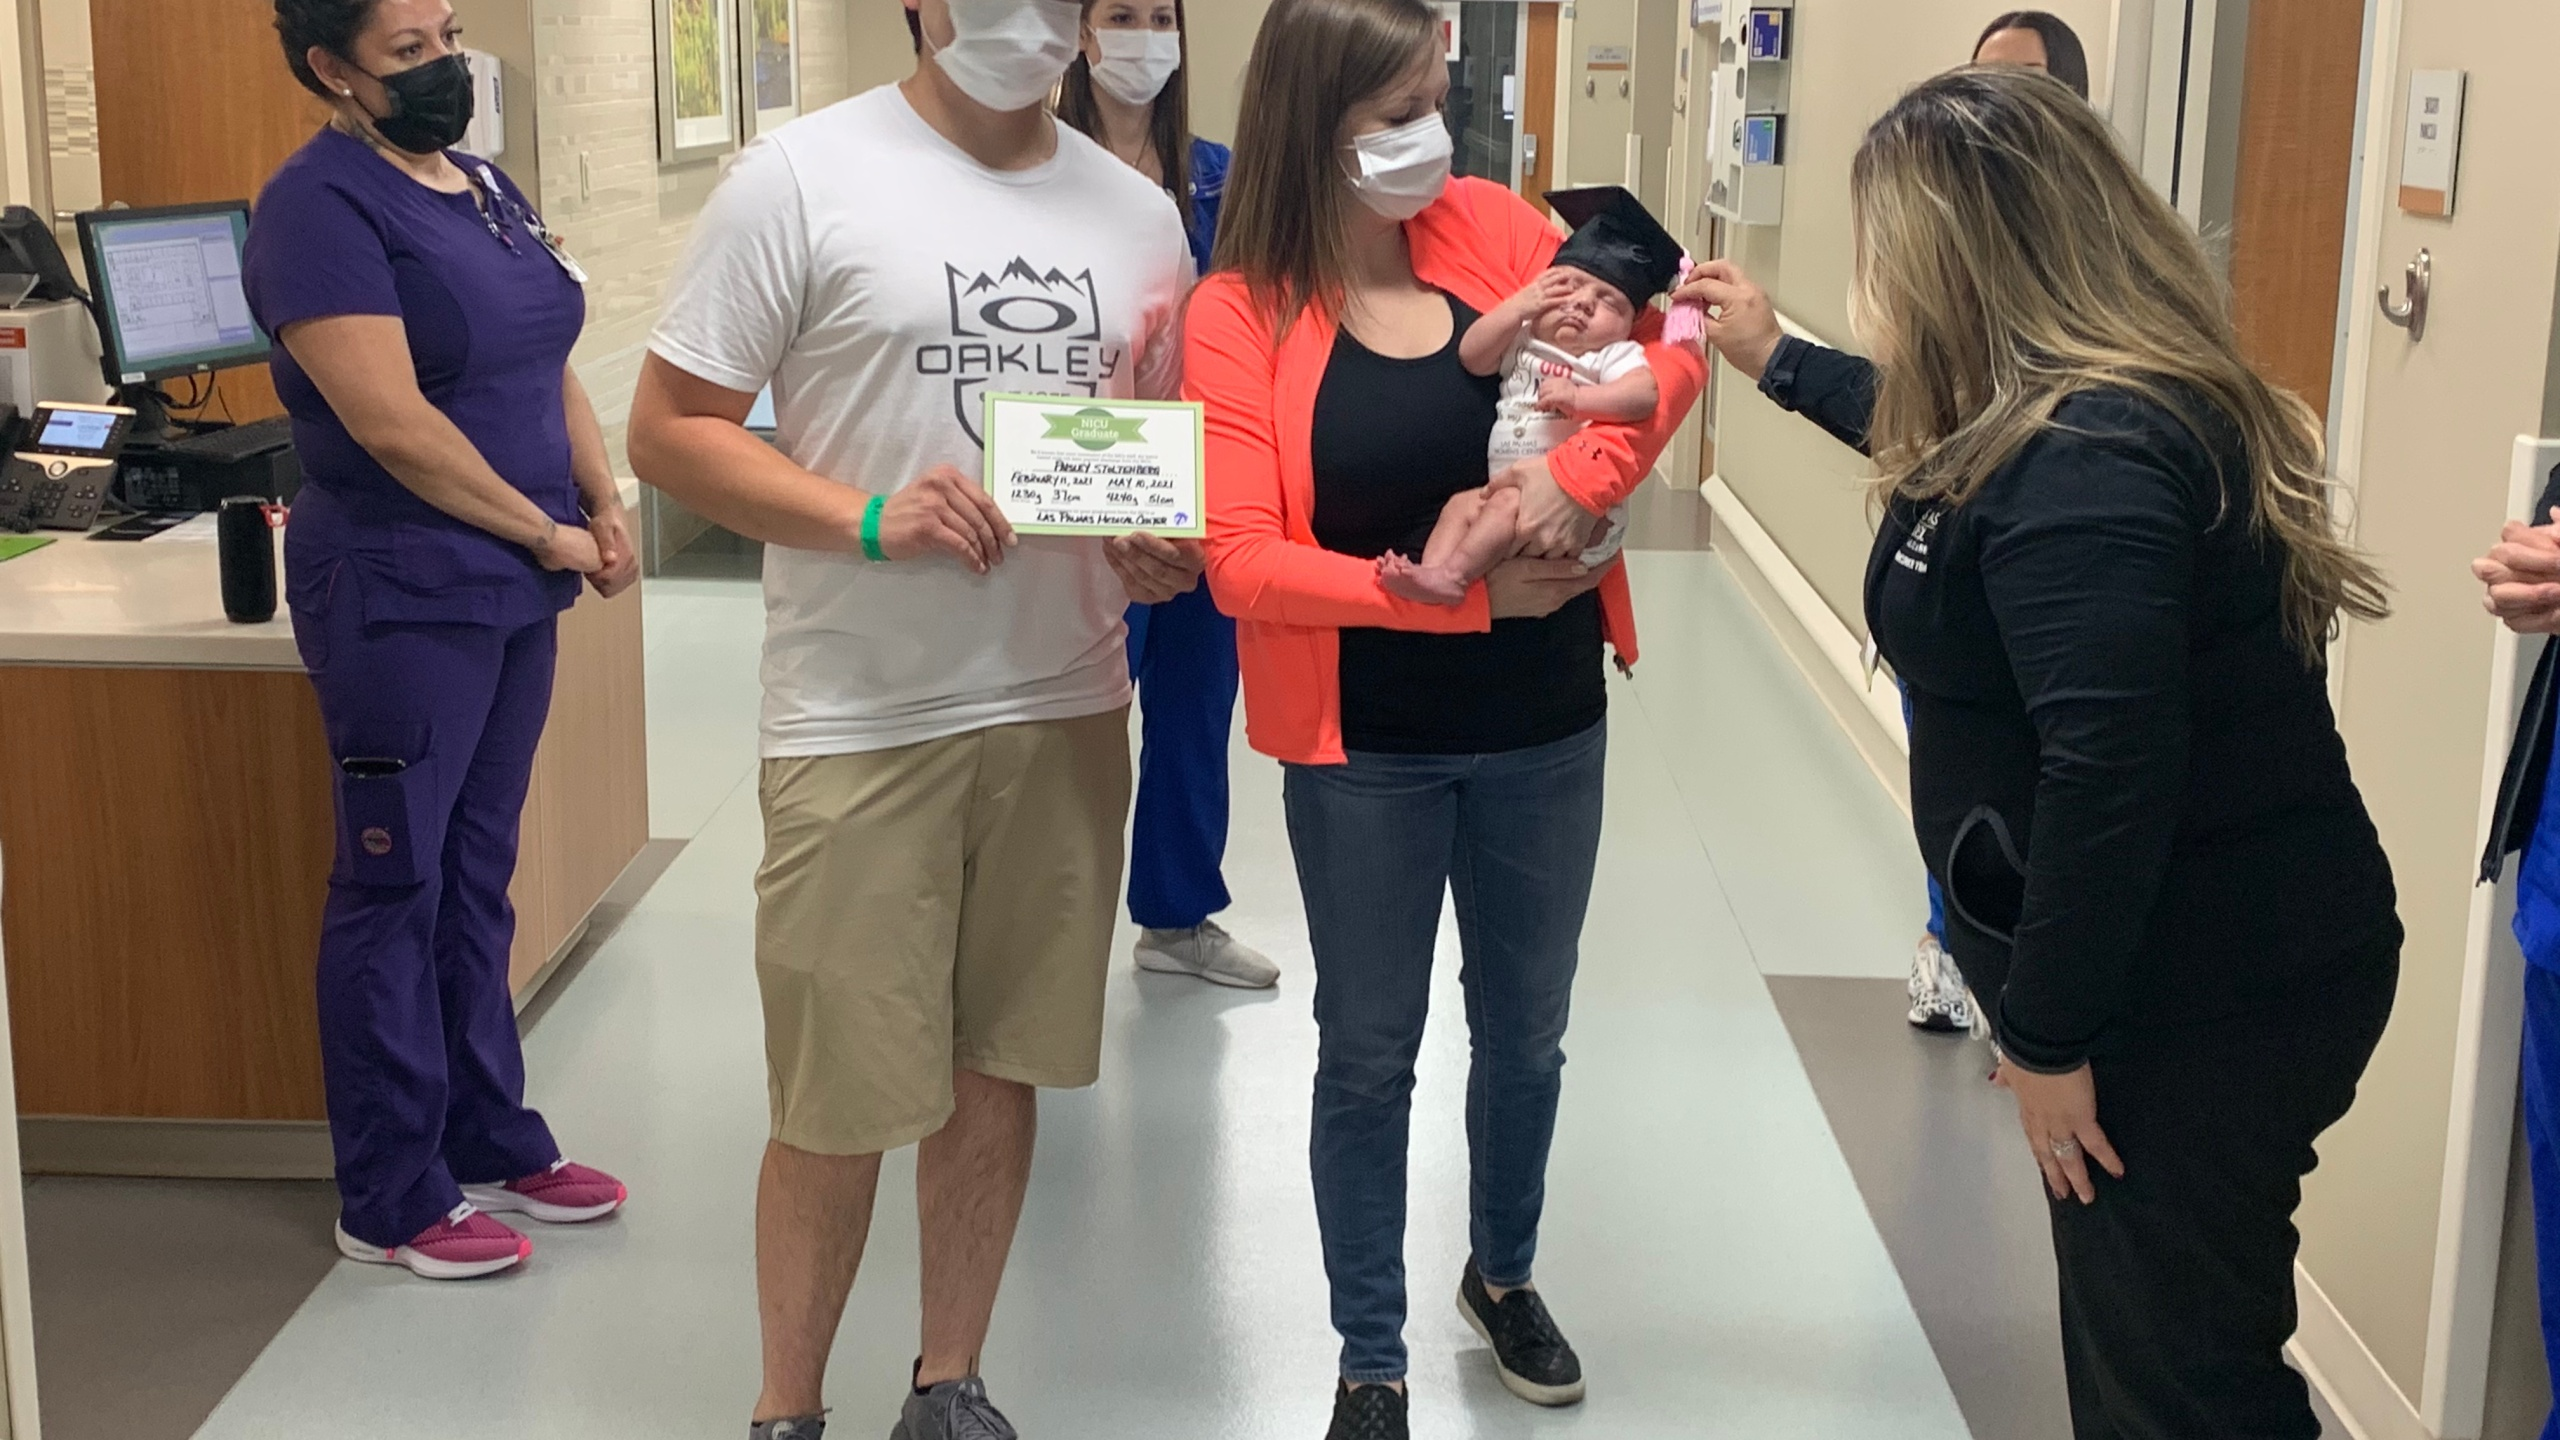 Babies held by their parents are wearing graduation caps with tassels on their wait out of the Neonatal Intensive Care Unit